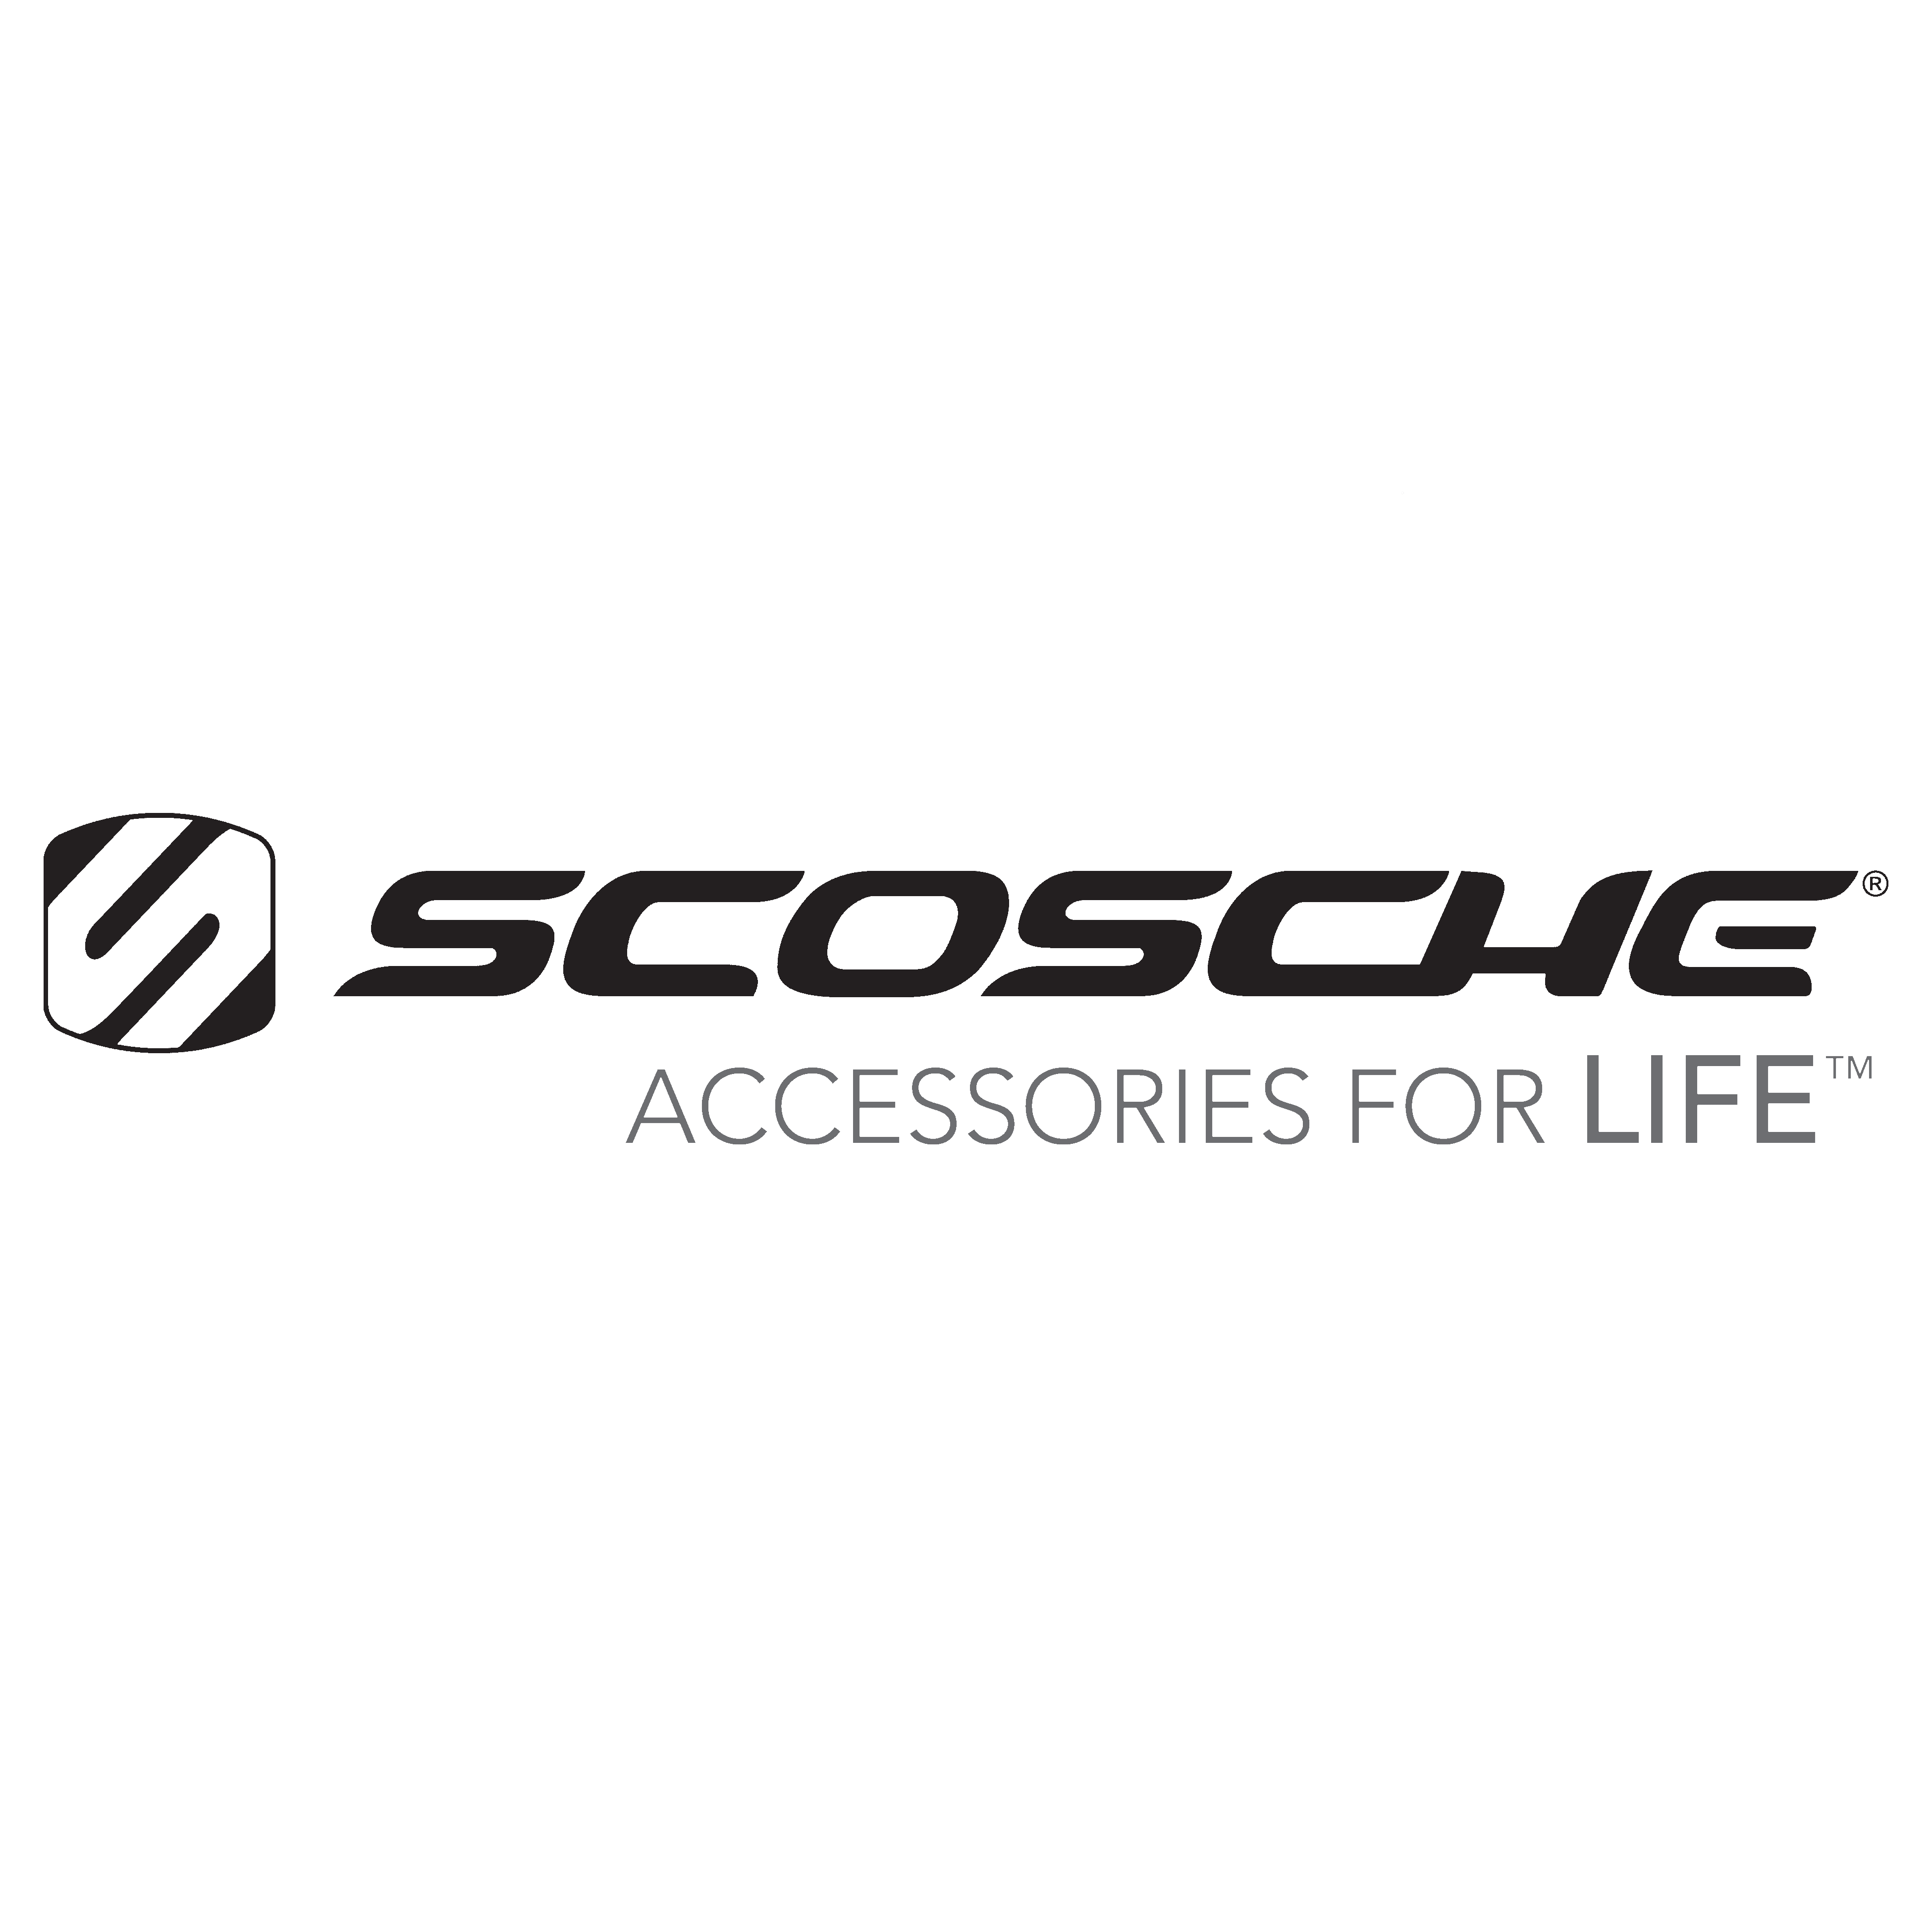 Take 30% OFF our Rhythm24 Armband Heart Rate Monitors by entering Coupon at Scosche.com. This coupon isJan. 31st so order NOW!